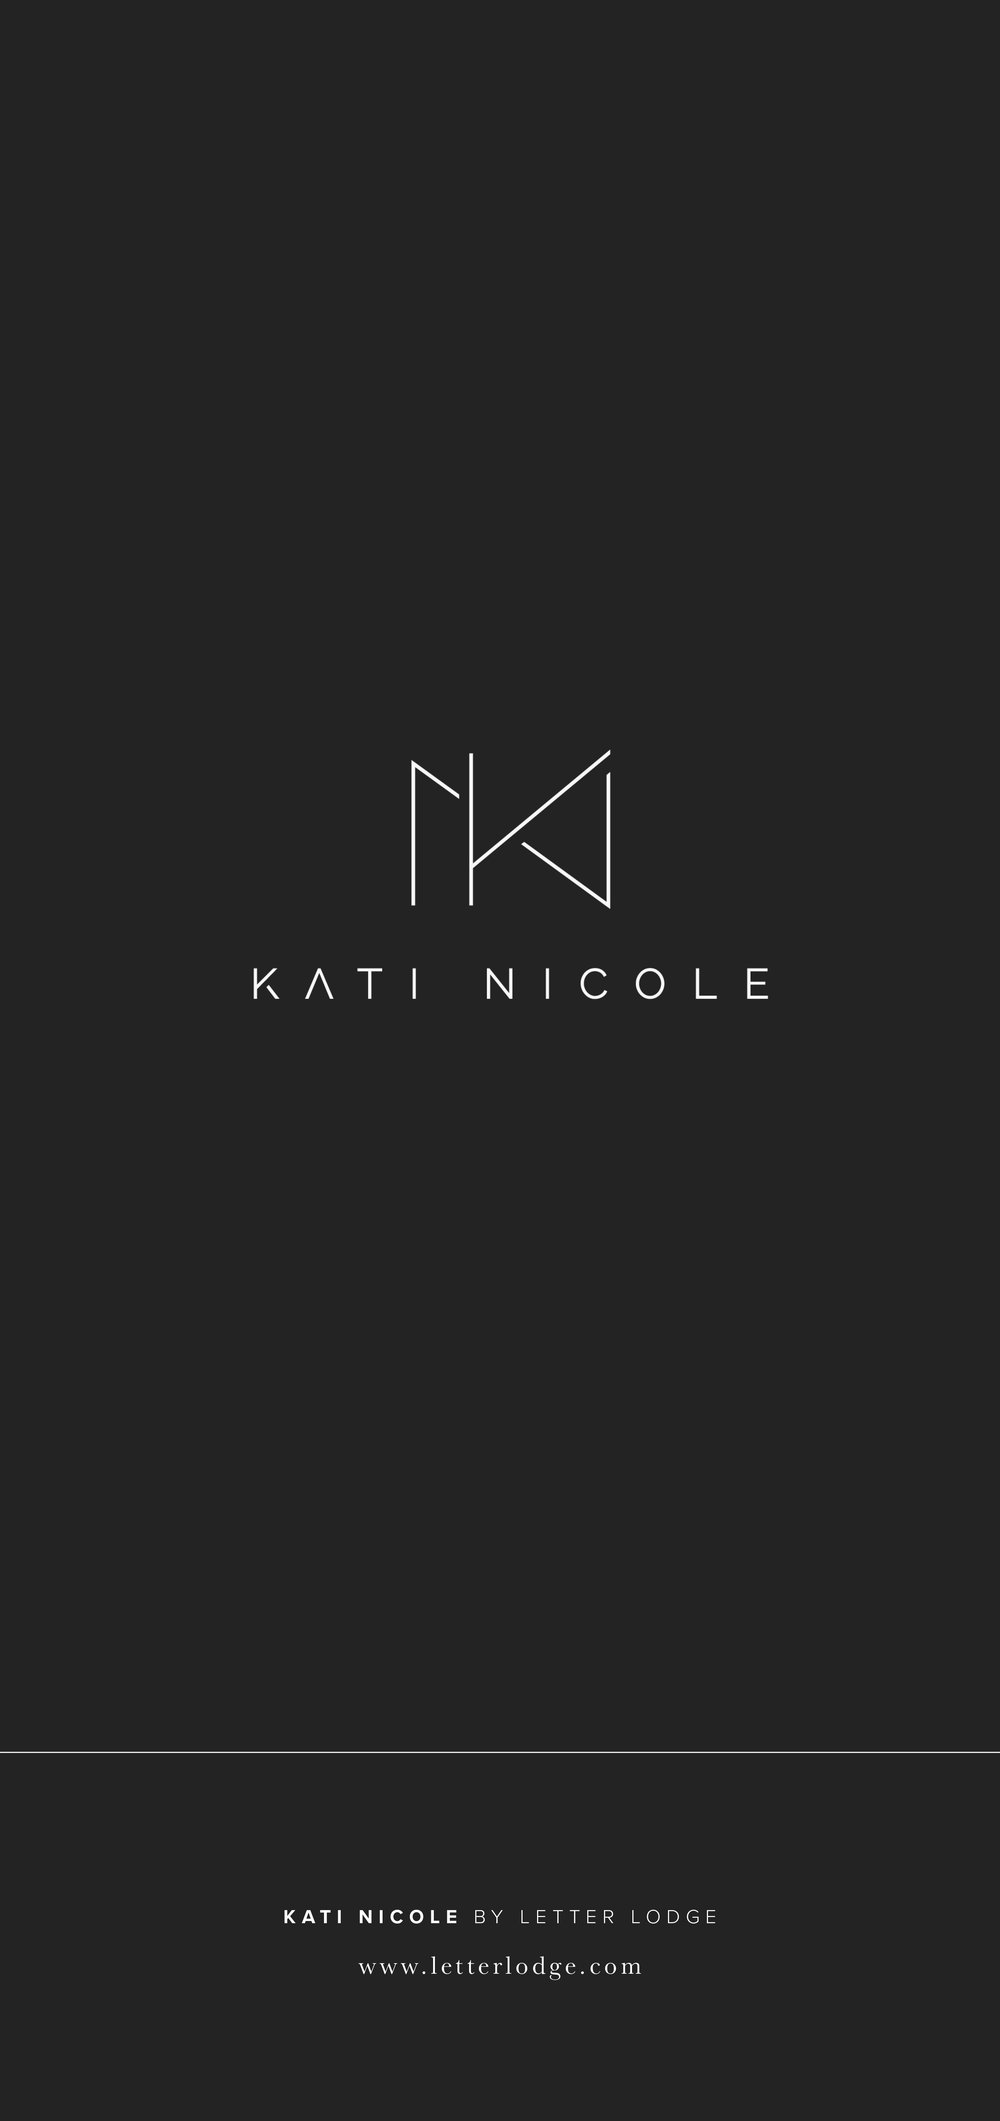 Kati Nicole Photography Wedding and Elopement Photographer Portland Oregon Branding Logo Design Graphic Design by Letter Lodge Design House White Minimal Modern Simple Clean Lifestyle Blogger Fashion Editorial Designer.jpg